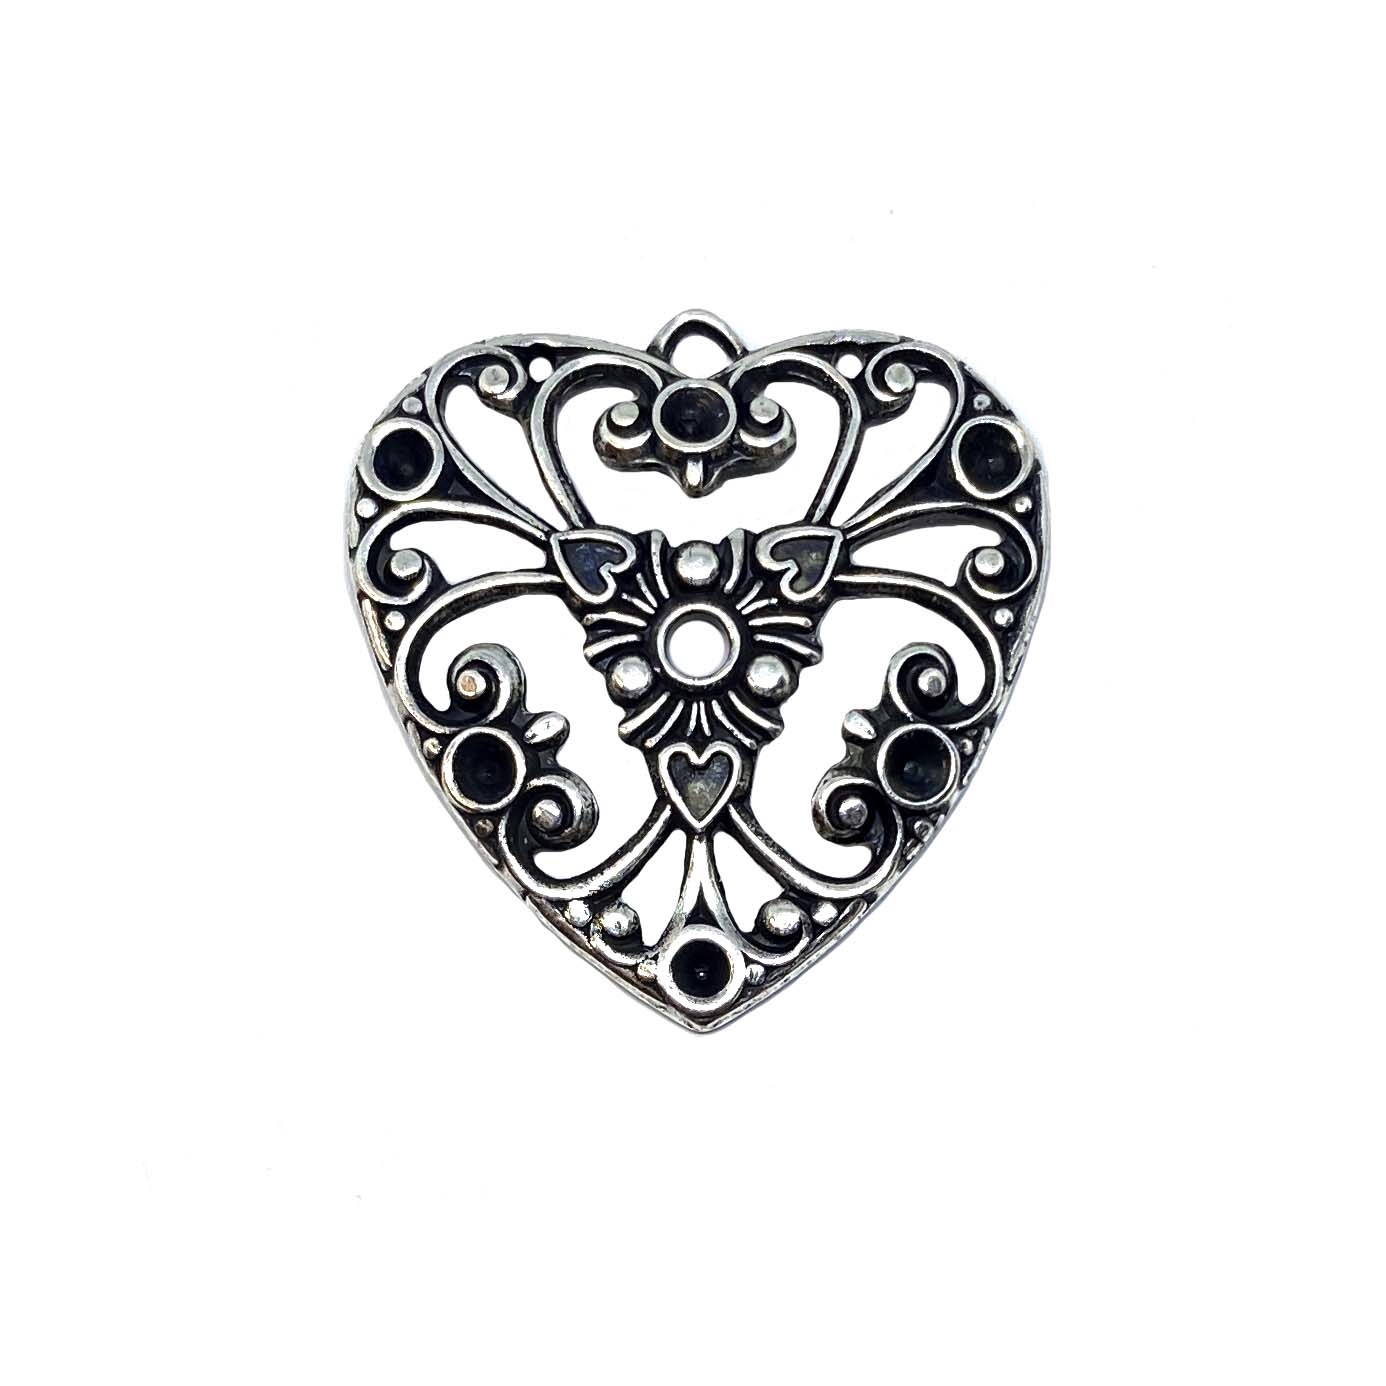 Brass Heart, Filigree Heart Charm, Heart Pendant, Silverware Silverplate, US Made, Nickel Free, 27 x 26mm